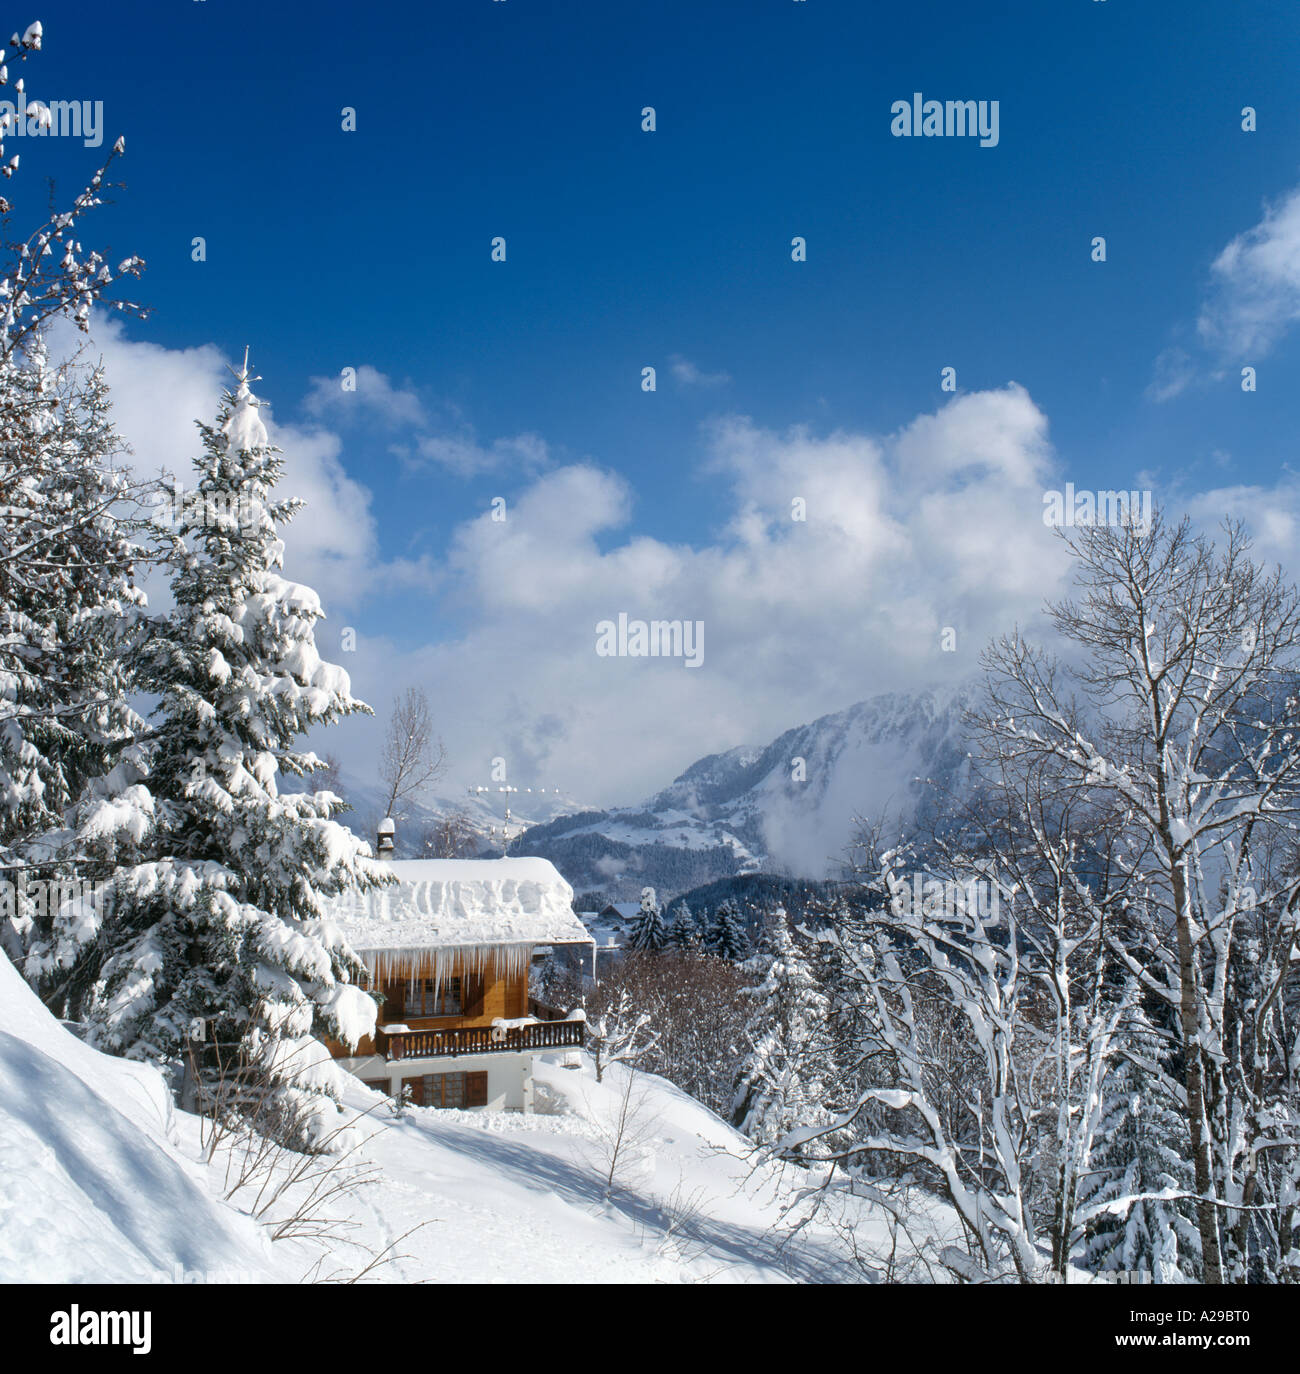 Chalet and View from old village of Leysin, Swiss Alps, Switzerland - Stock Image